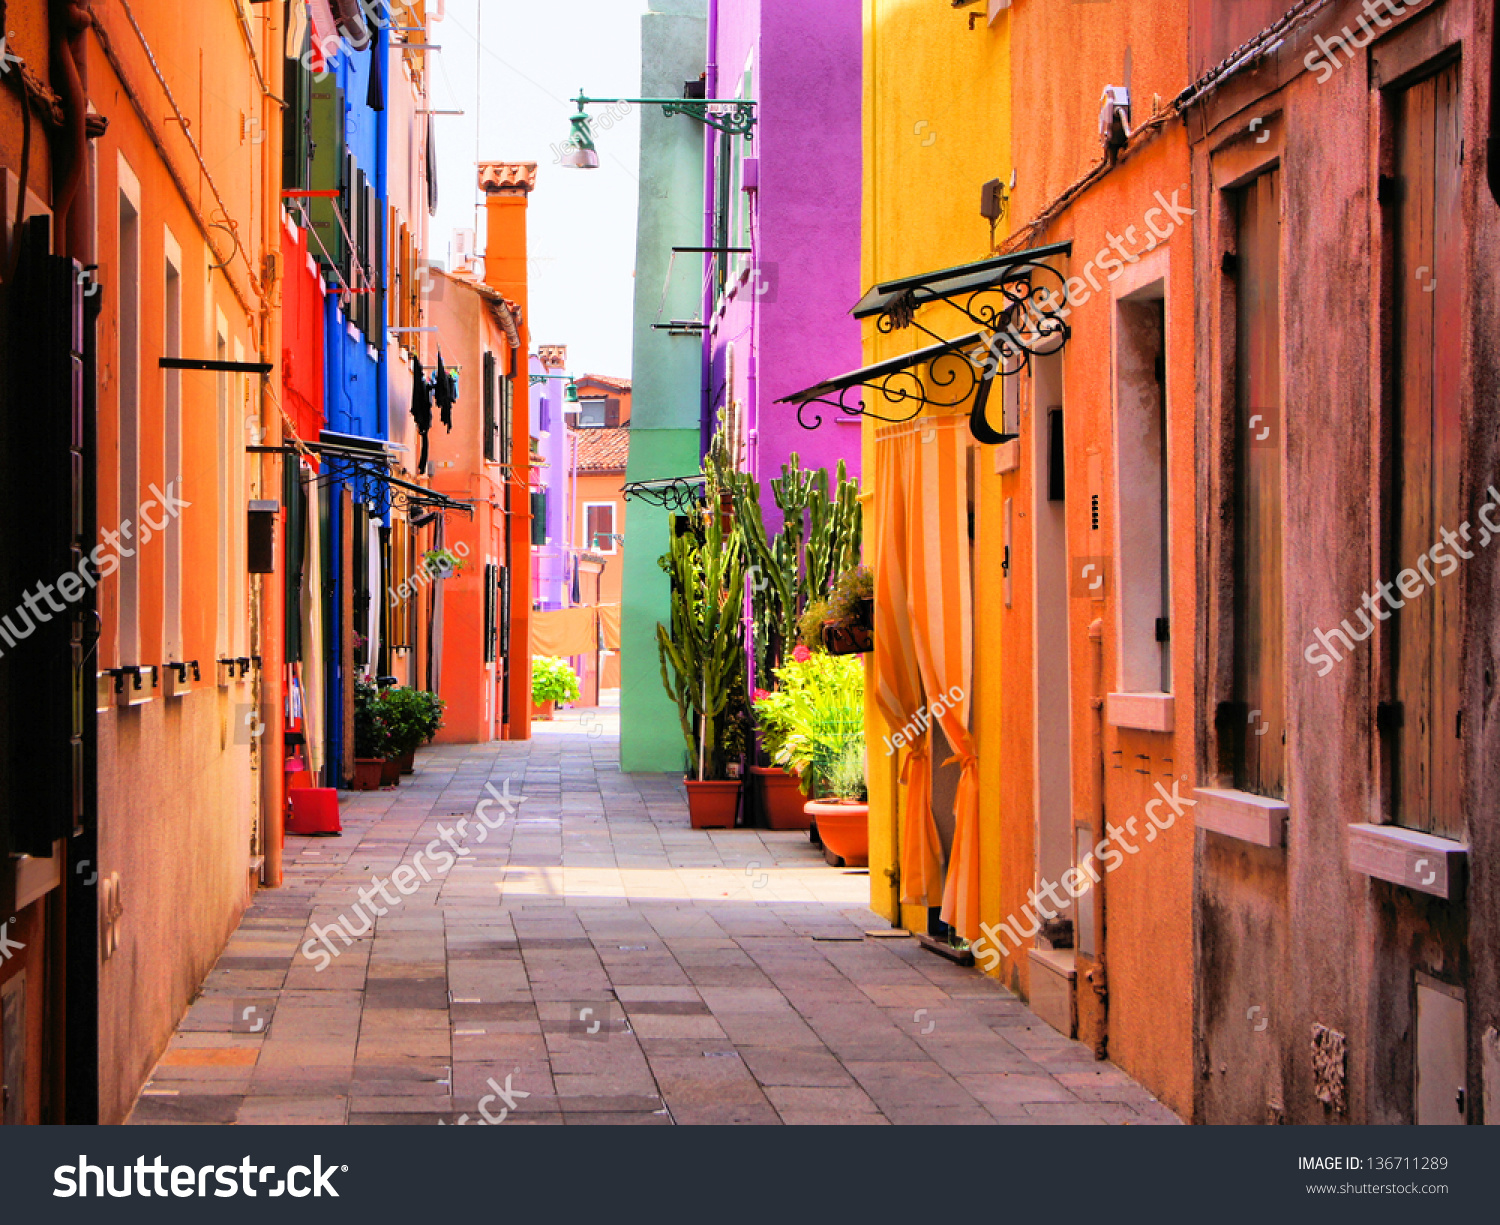 Colorful Street In Burano, Near Venice, Italy Stock Photo 136711289 ...: www.shutterstock.com/pic-136711289/stock-photo-colorful-street-in...